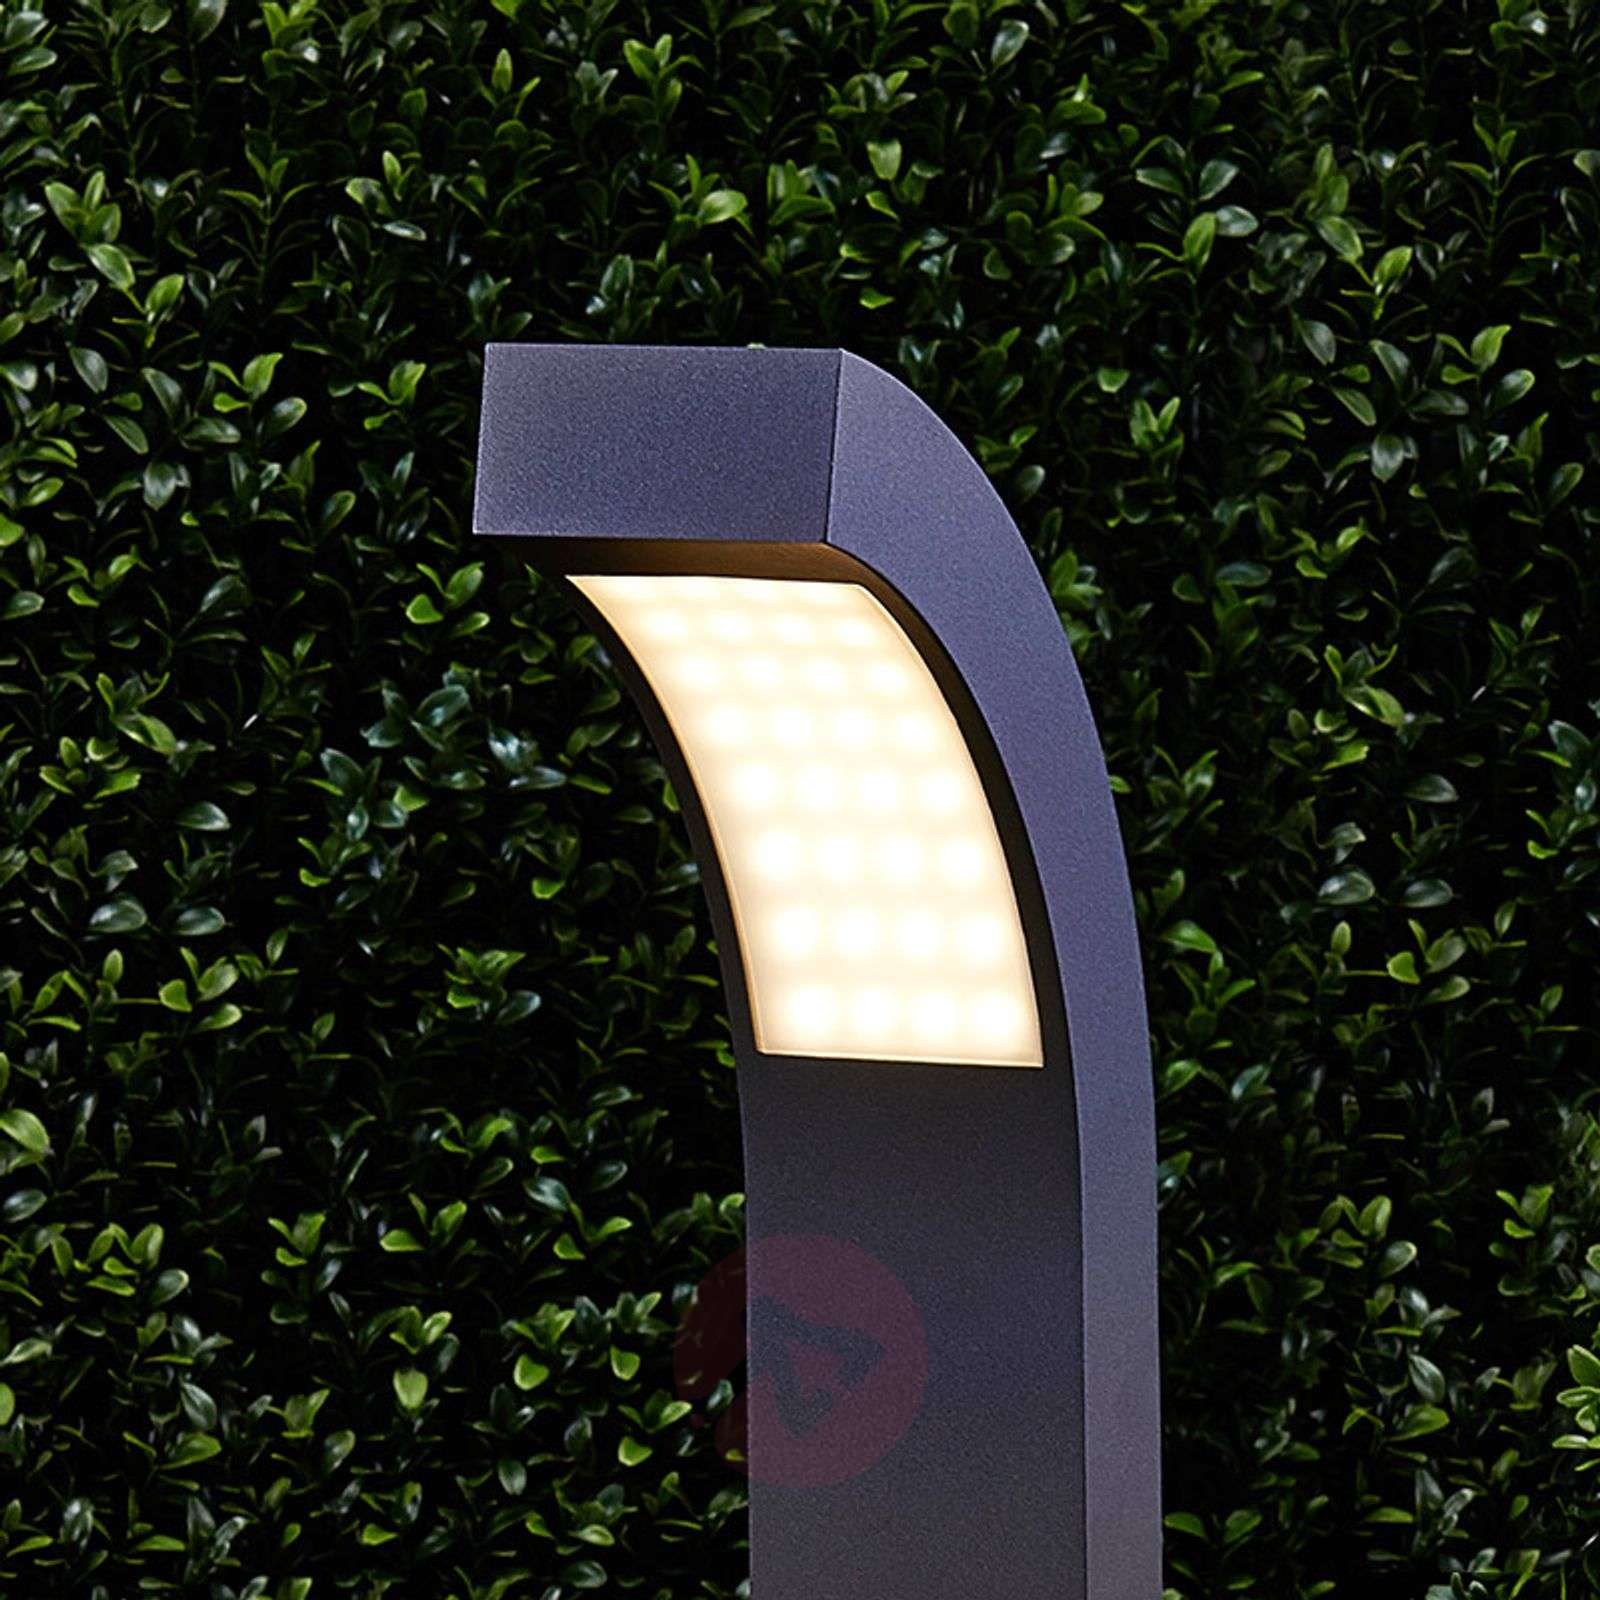 Lennik graphite grey led path lamp for Luminaire exterieur design led